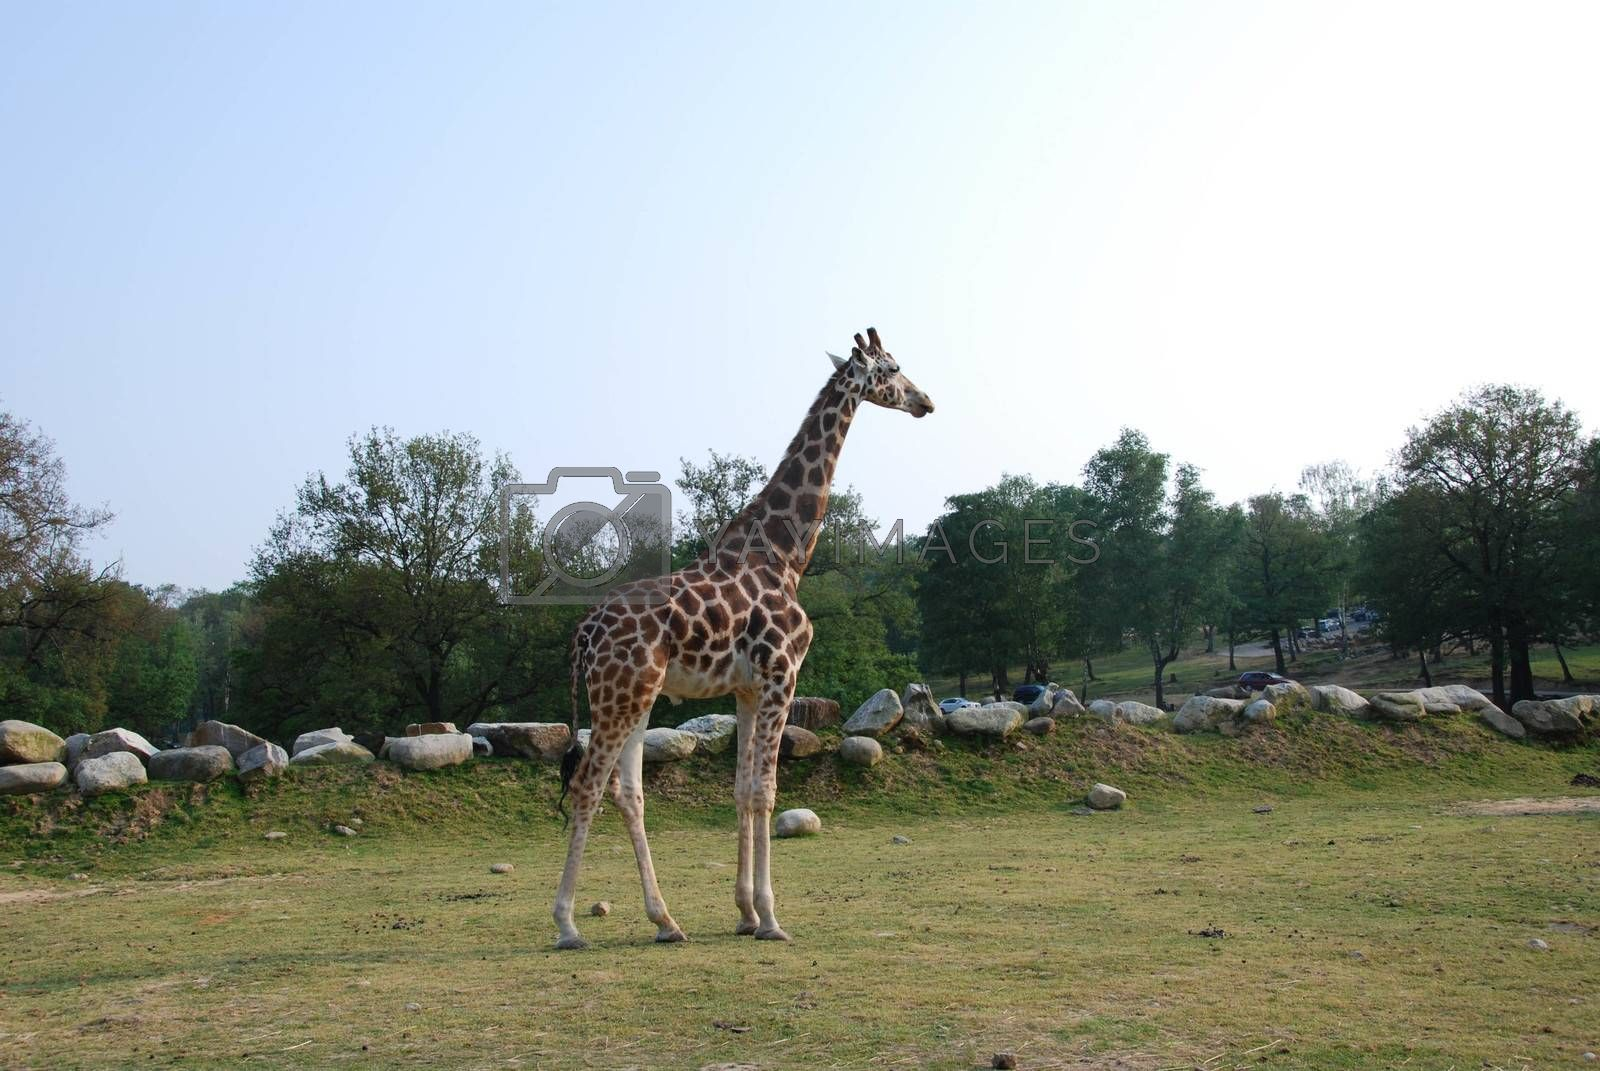 Lonely giraffe in a park